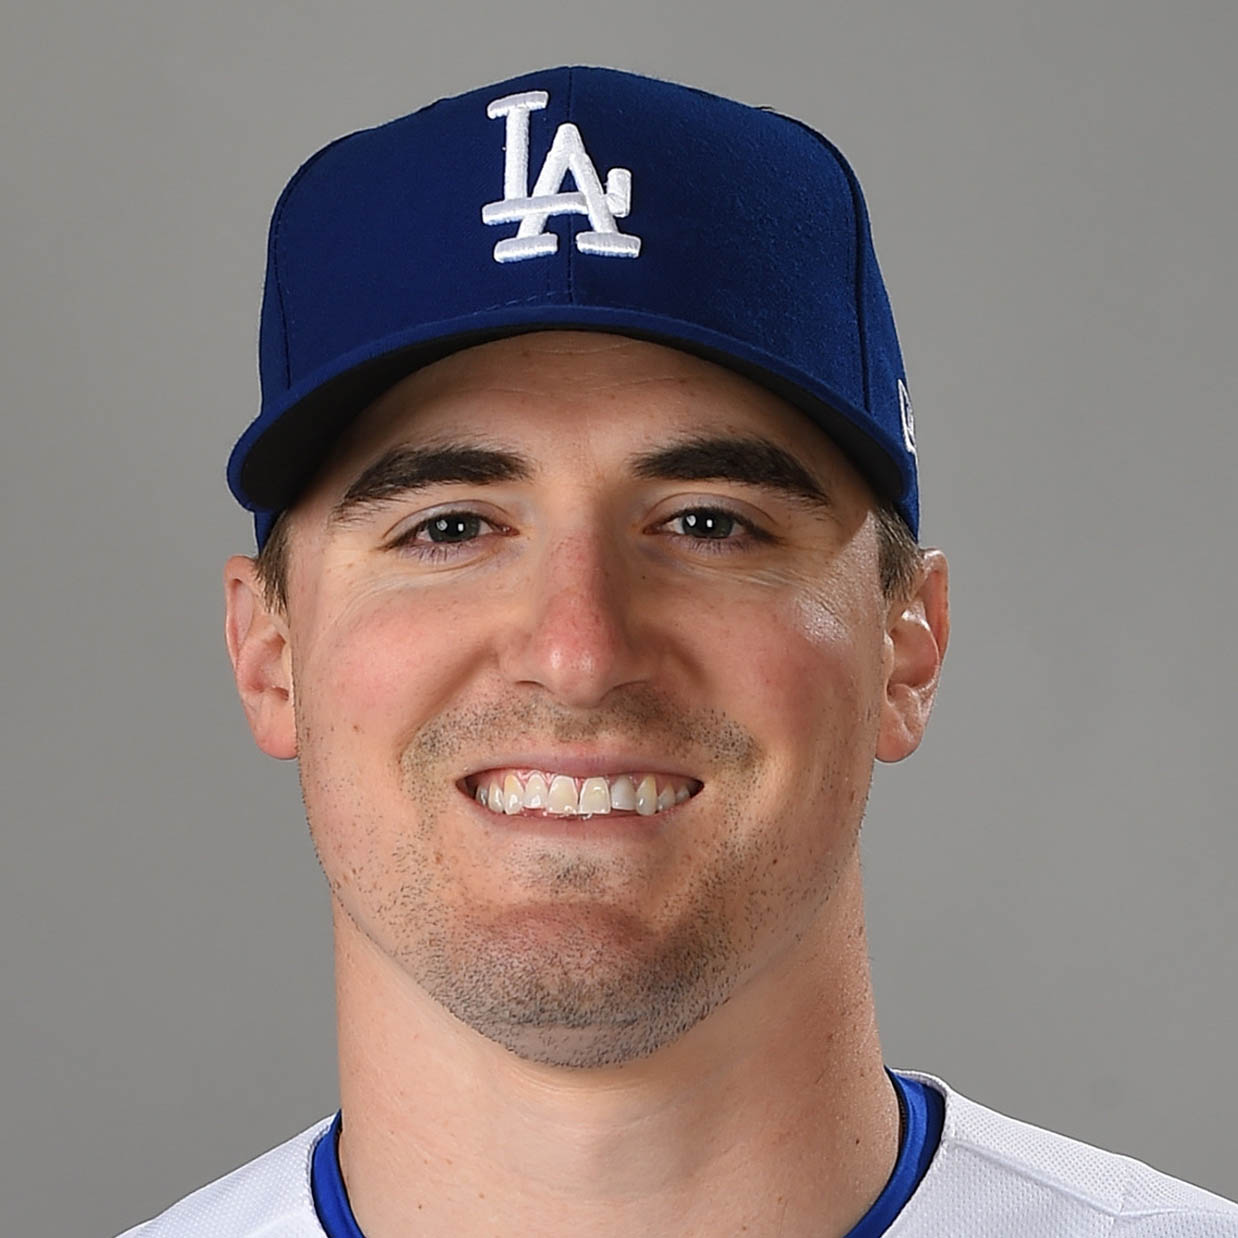 Ross Stripling (R) Headshot